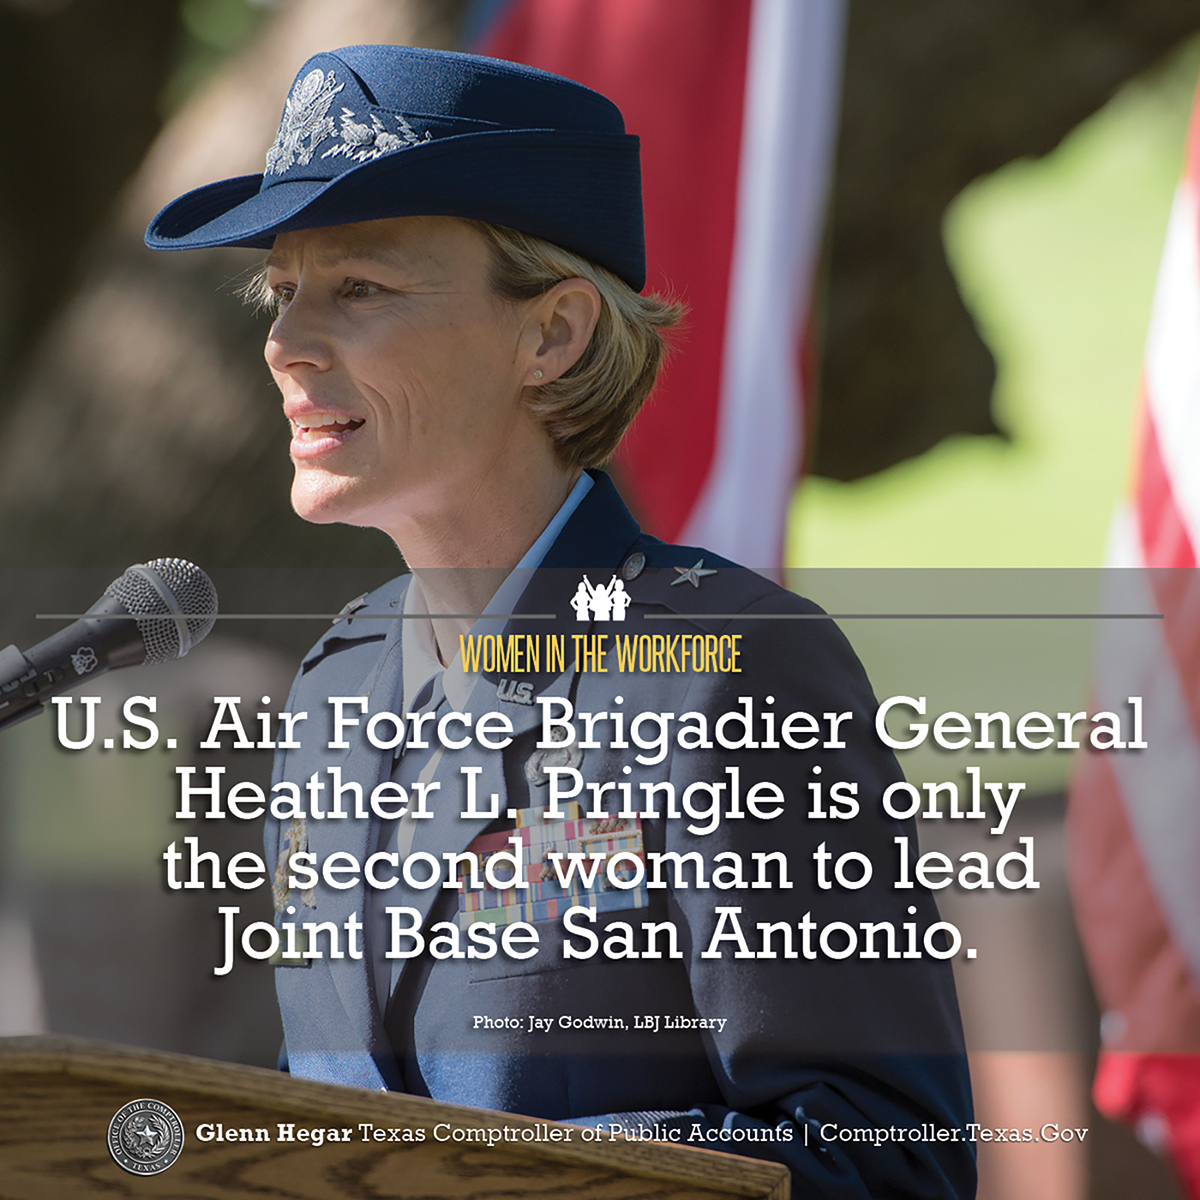 Women in the Workforce -  U.S. Air Force Brigadier General Heather L. Pringle is only the second woman to lead Joint Base San Antonio. Photo: Jay Godwin, LBJ Library